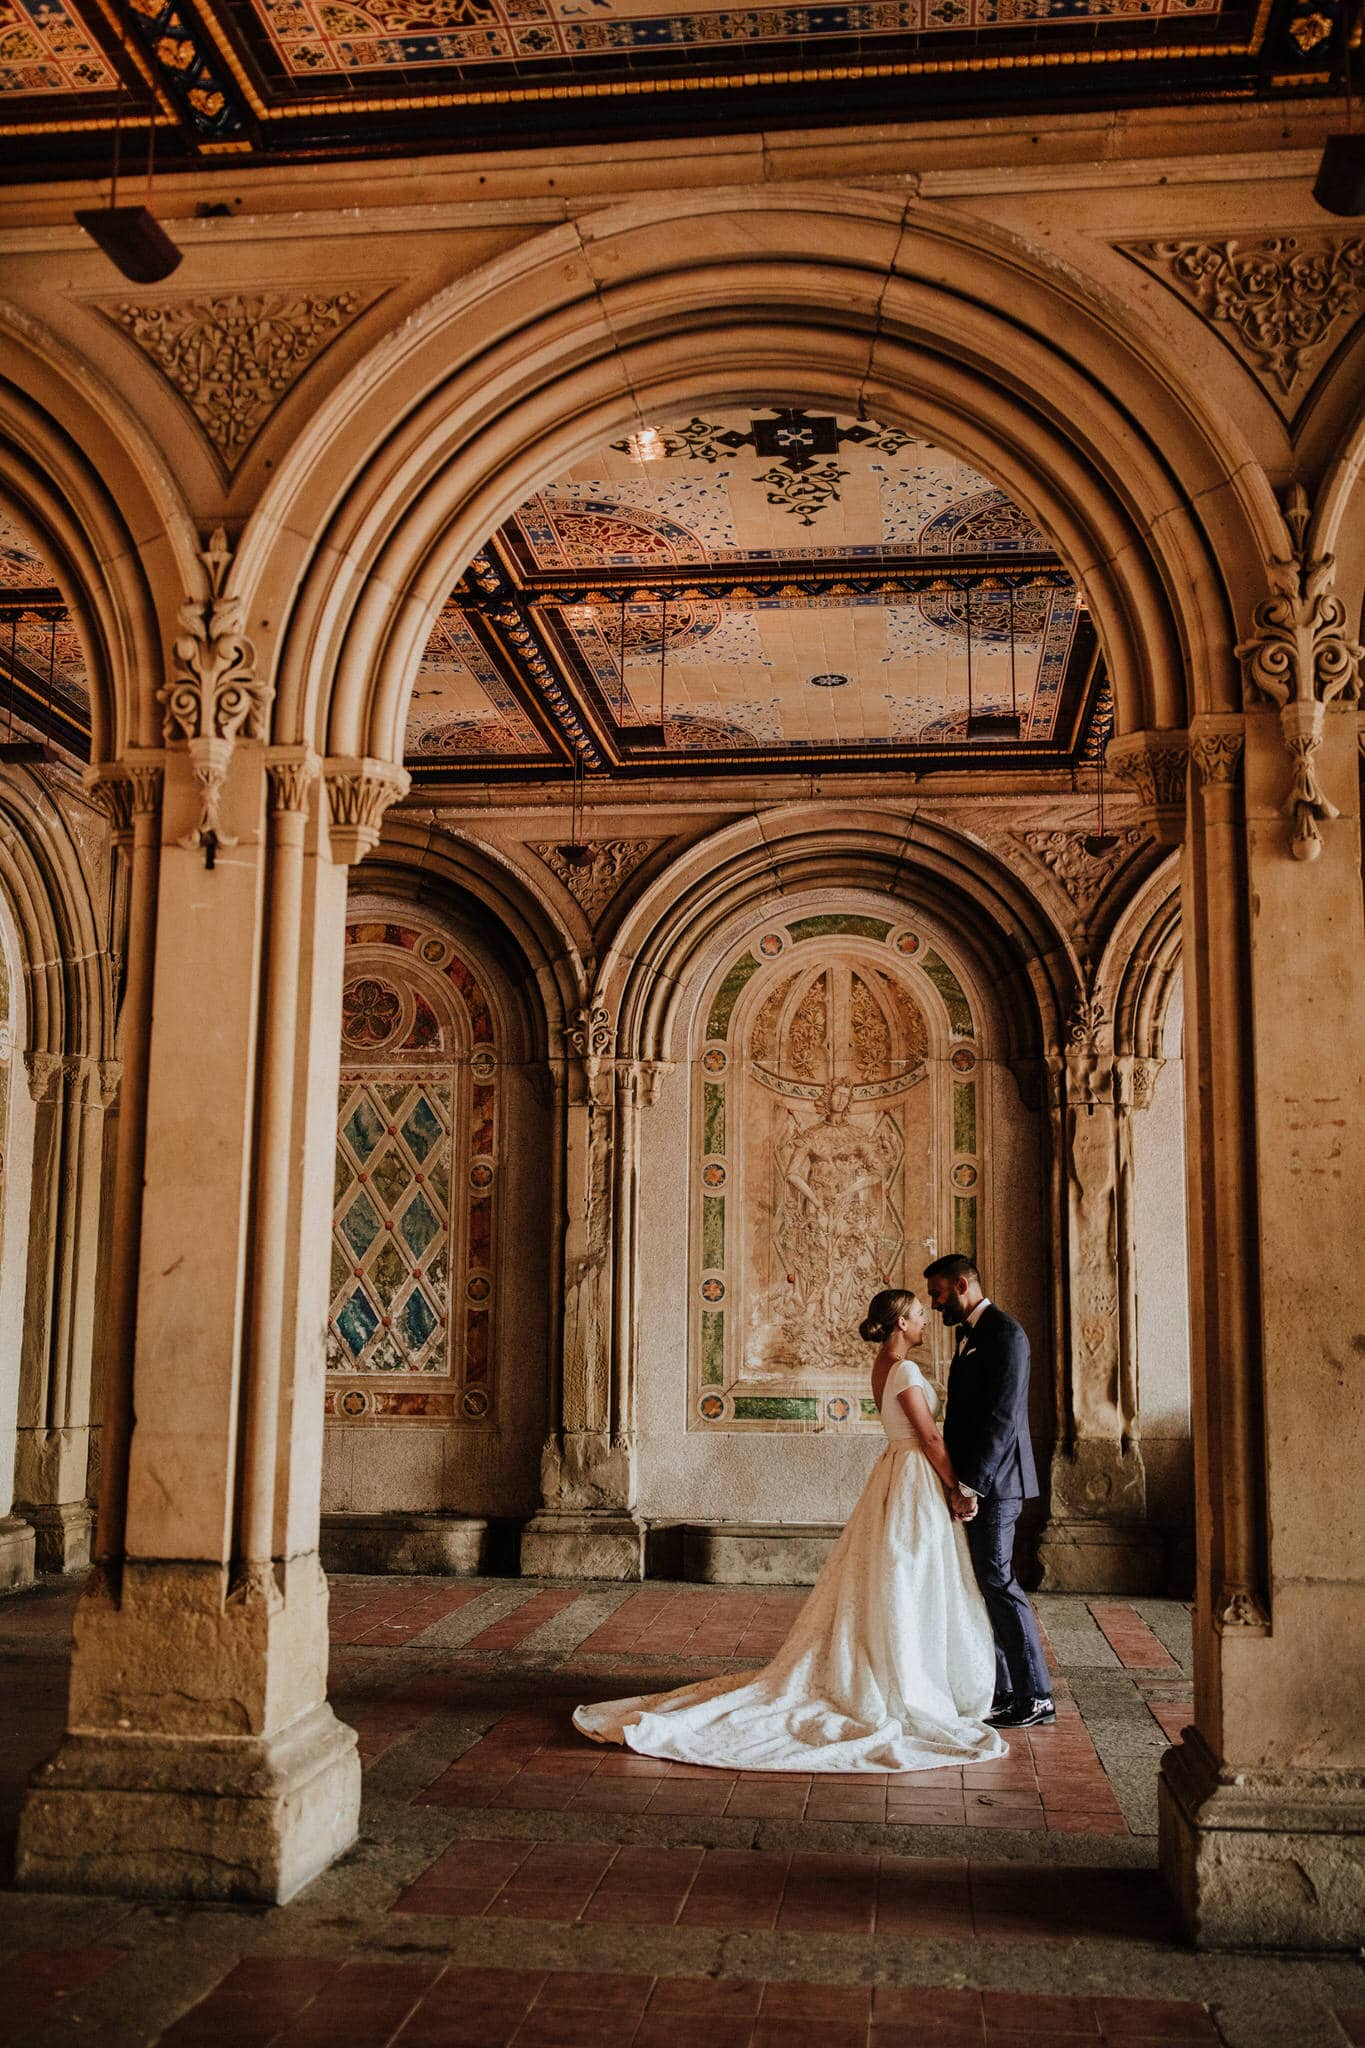 The bride and groom embrace under the Bethesda Terrace in Central Park, New York City. Wedding Photographer Brent Calis.